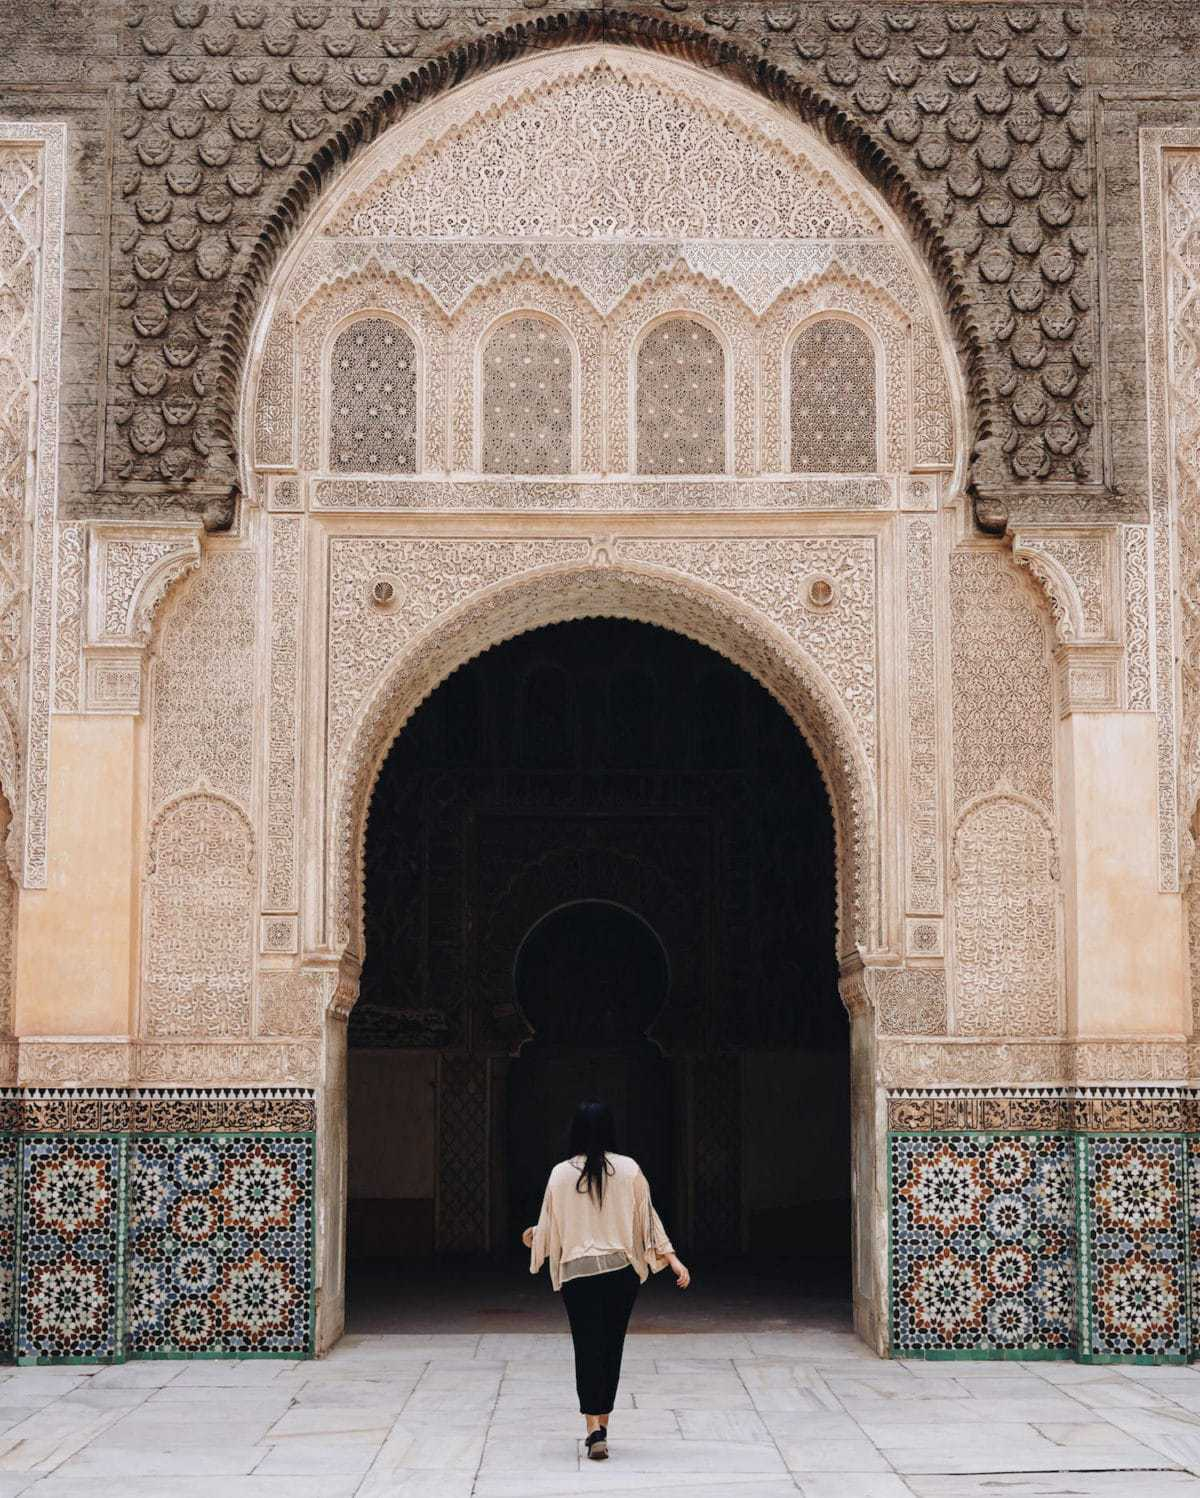 Jessica Wright of @bontraveler at Ben Youssef Madrasa, Morocco